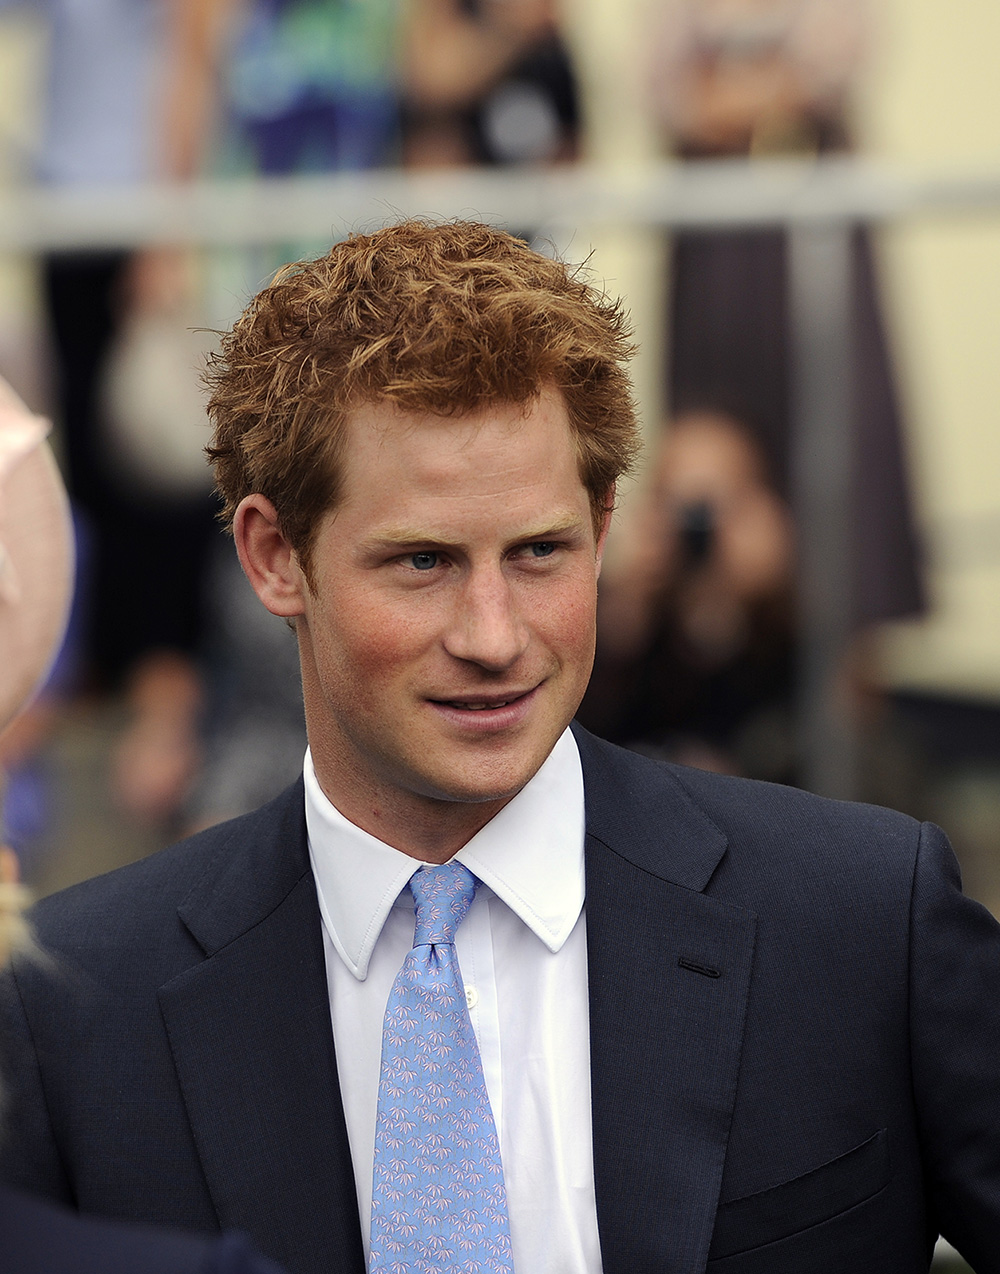 Prince Harry (The Duke of Sussex)